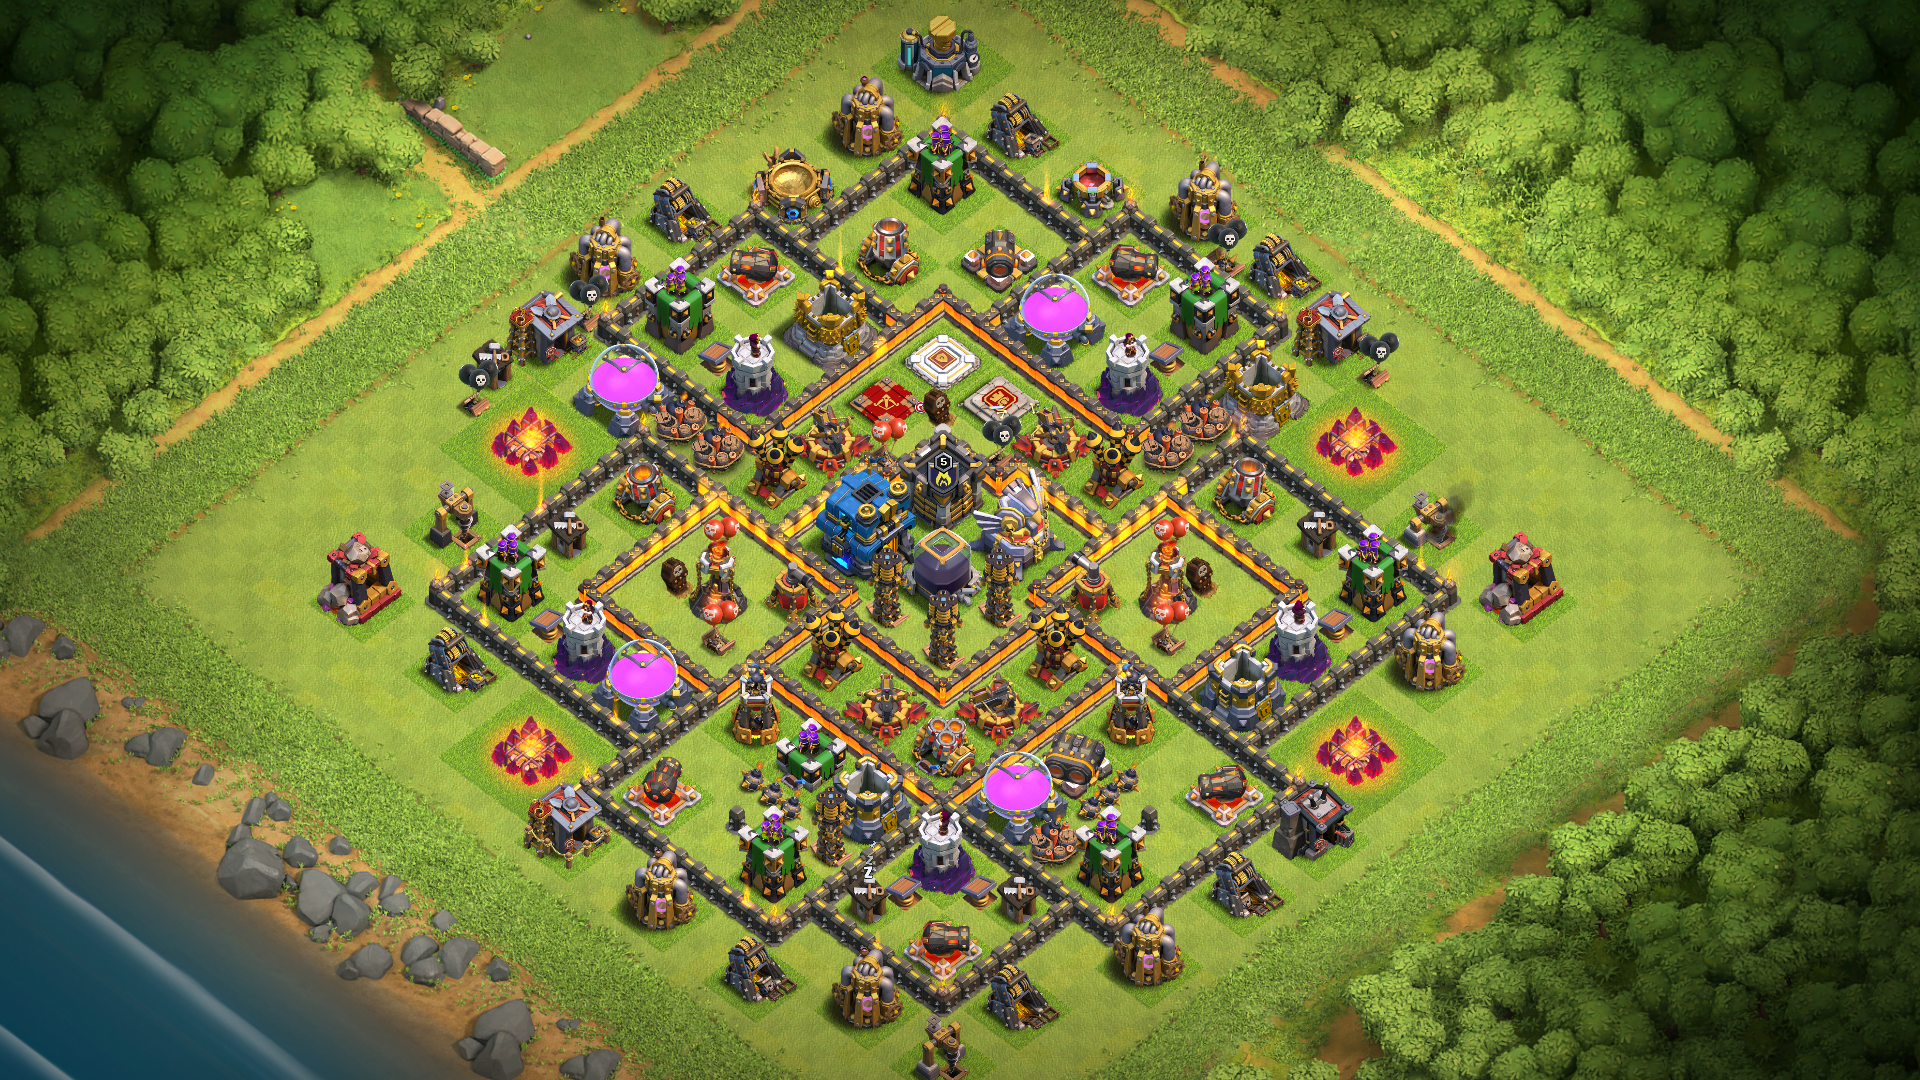 th11 Farming-Trophy Base